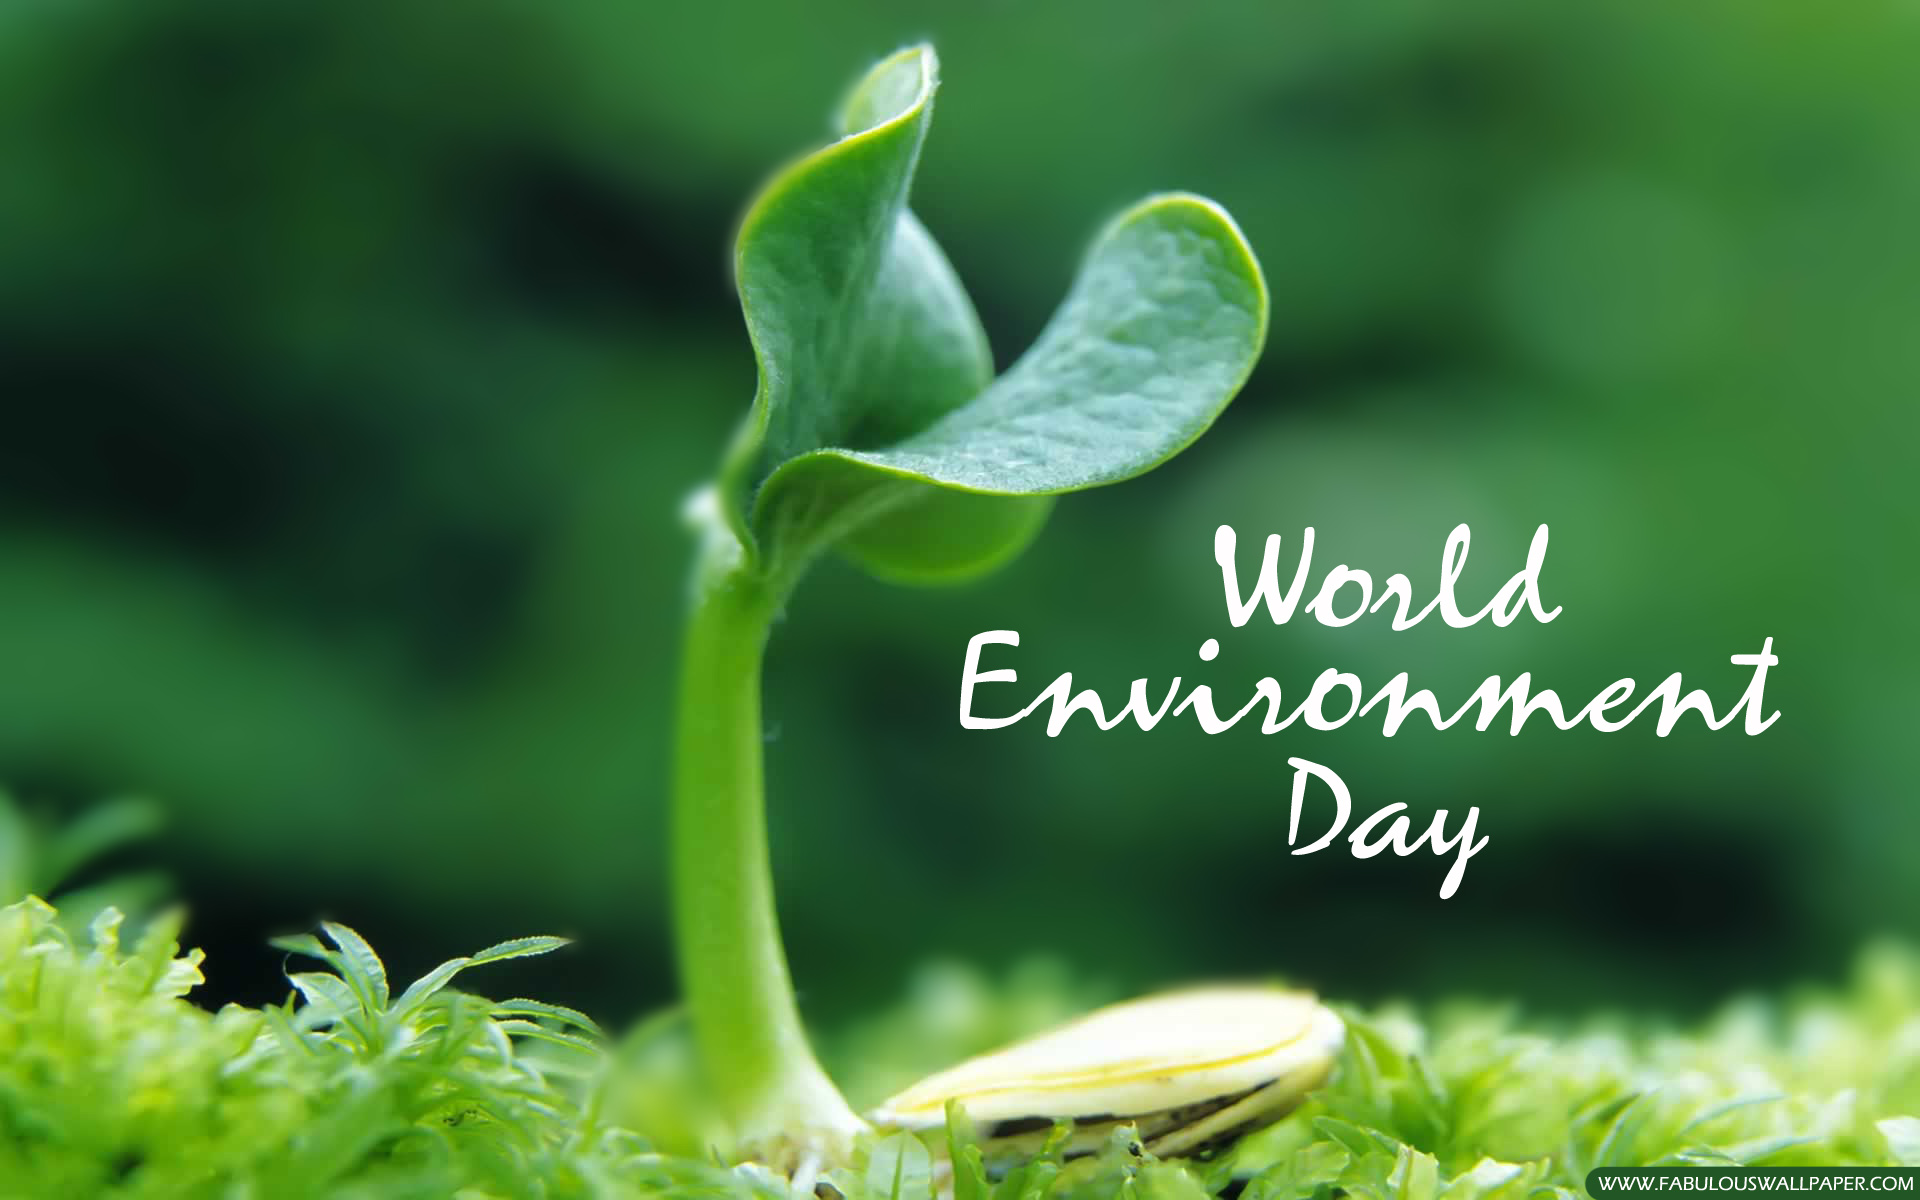 World Environment Day June 5th